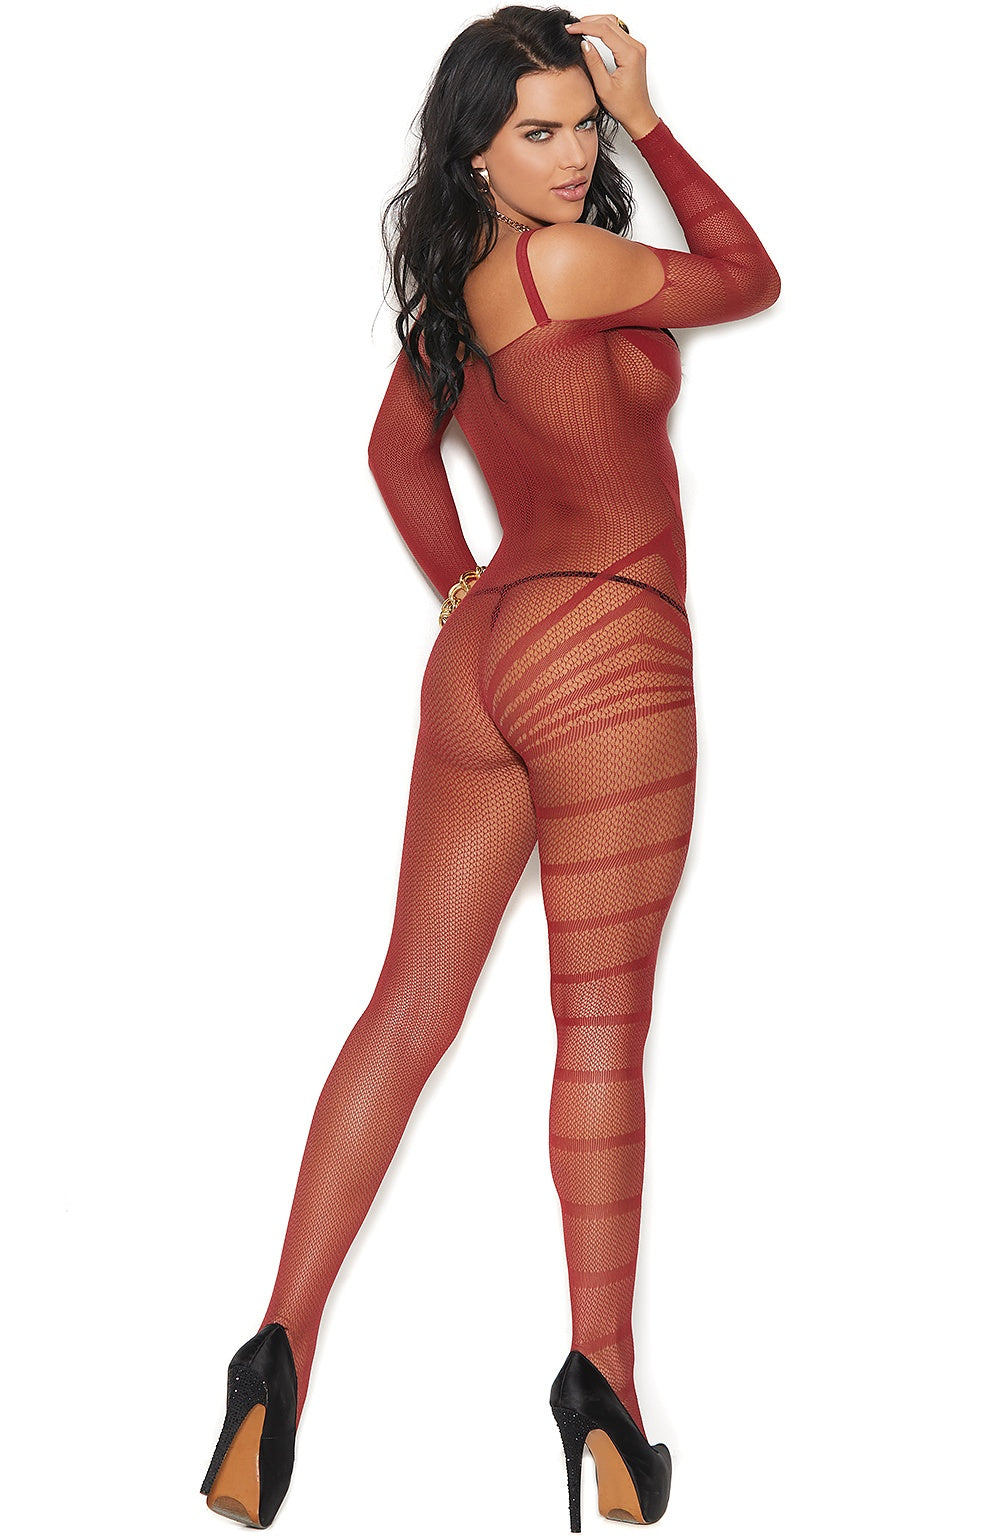 Burgundy nylon bodystocking - Sexylingerieland